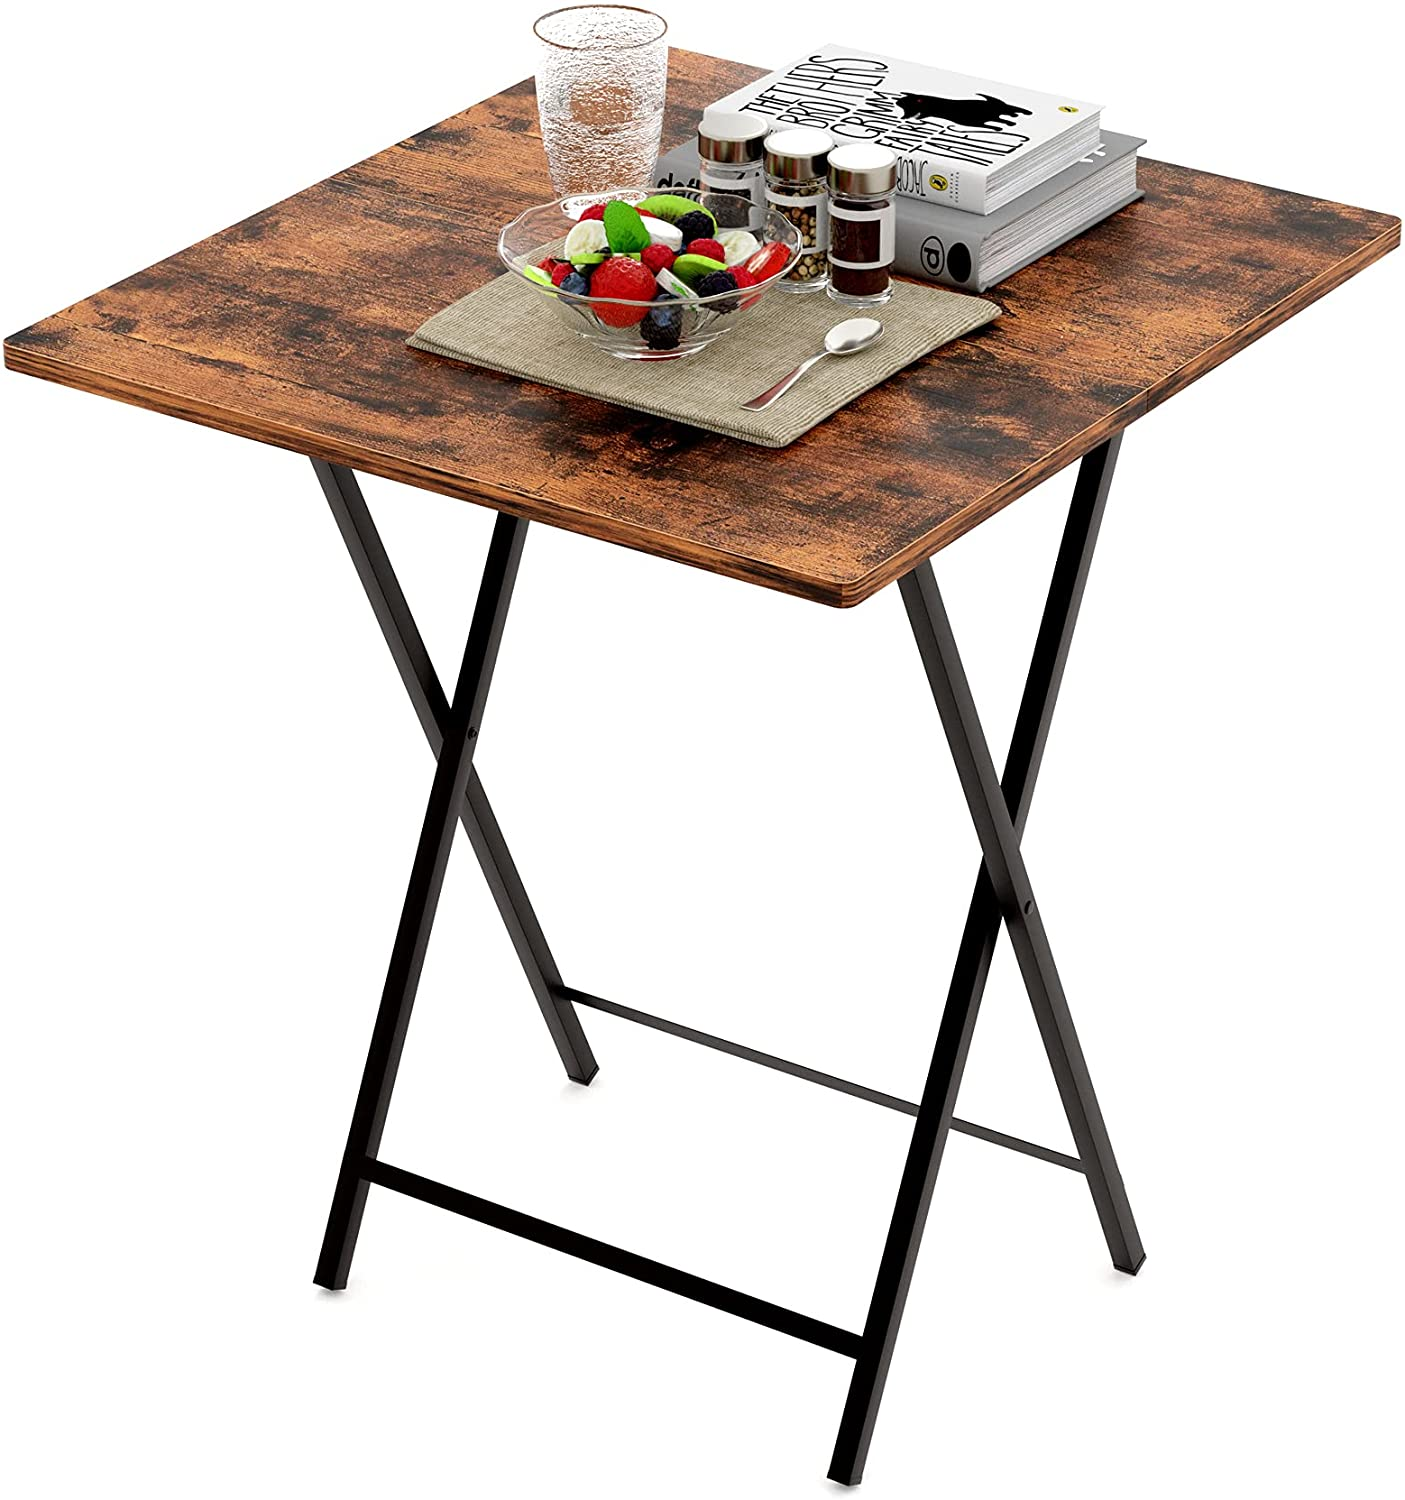 EKNITEY Folding Wooden Card Table Sale special price TV Direct sale of manufacturer - Indus Foldable Tray